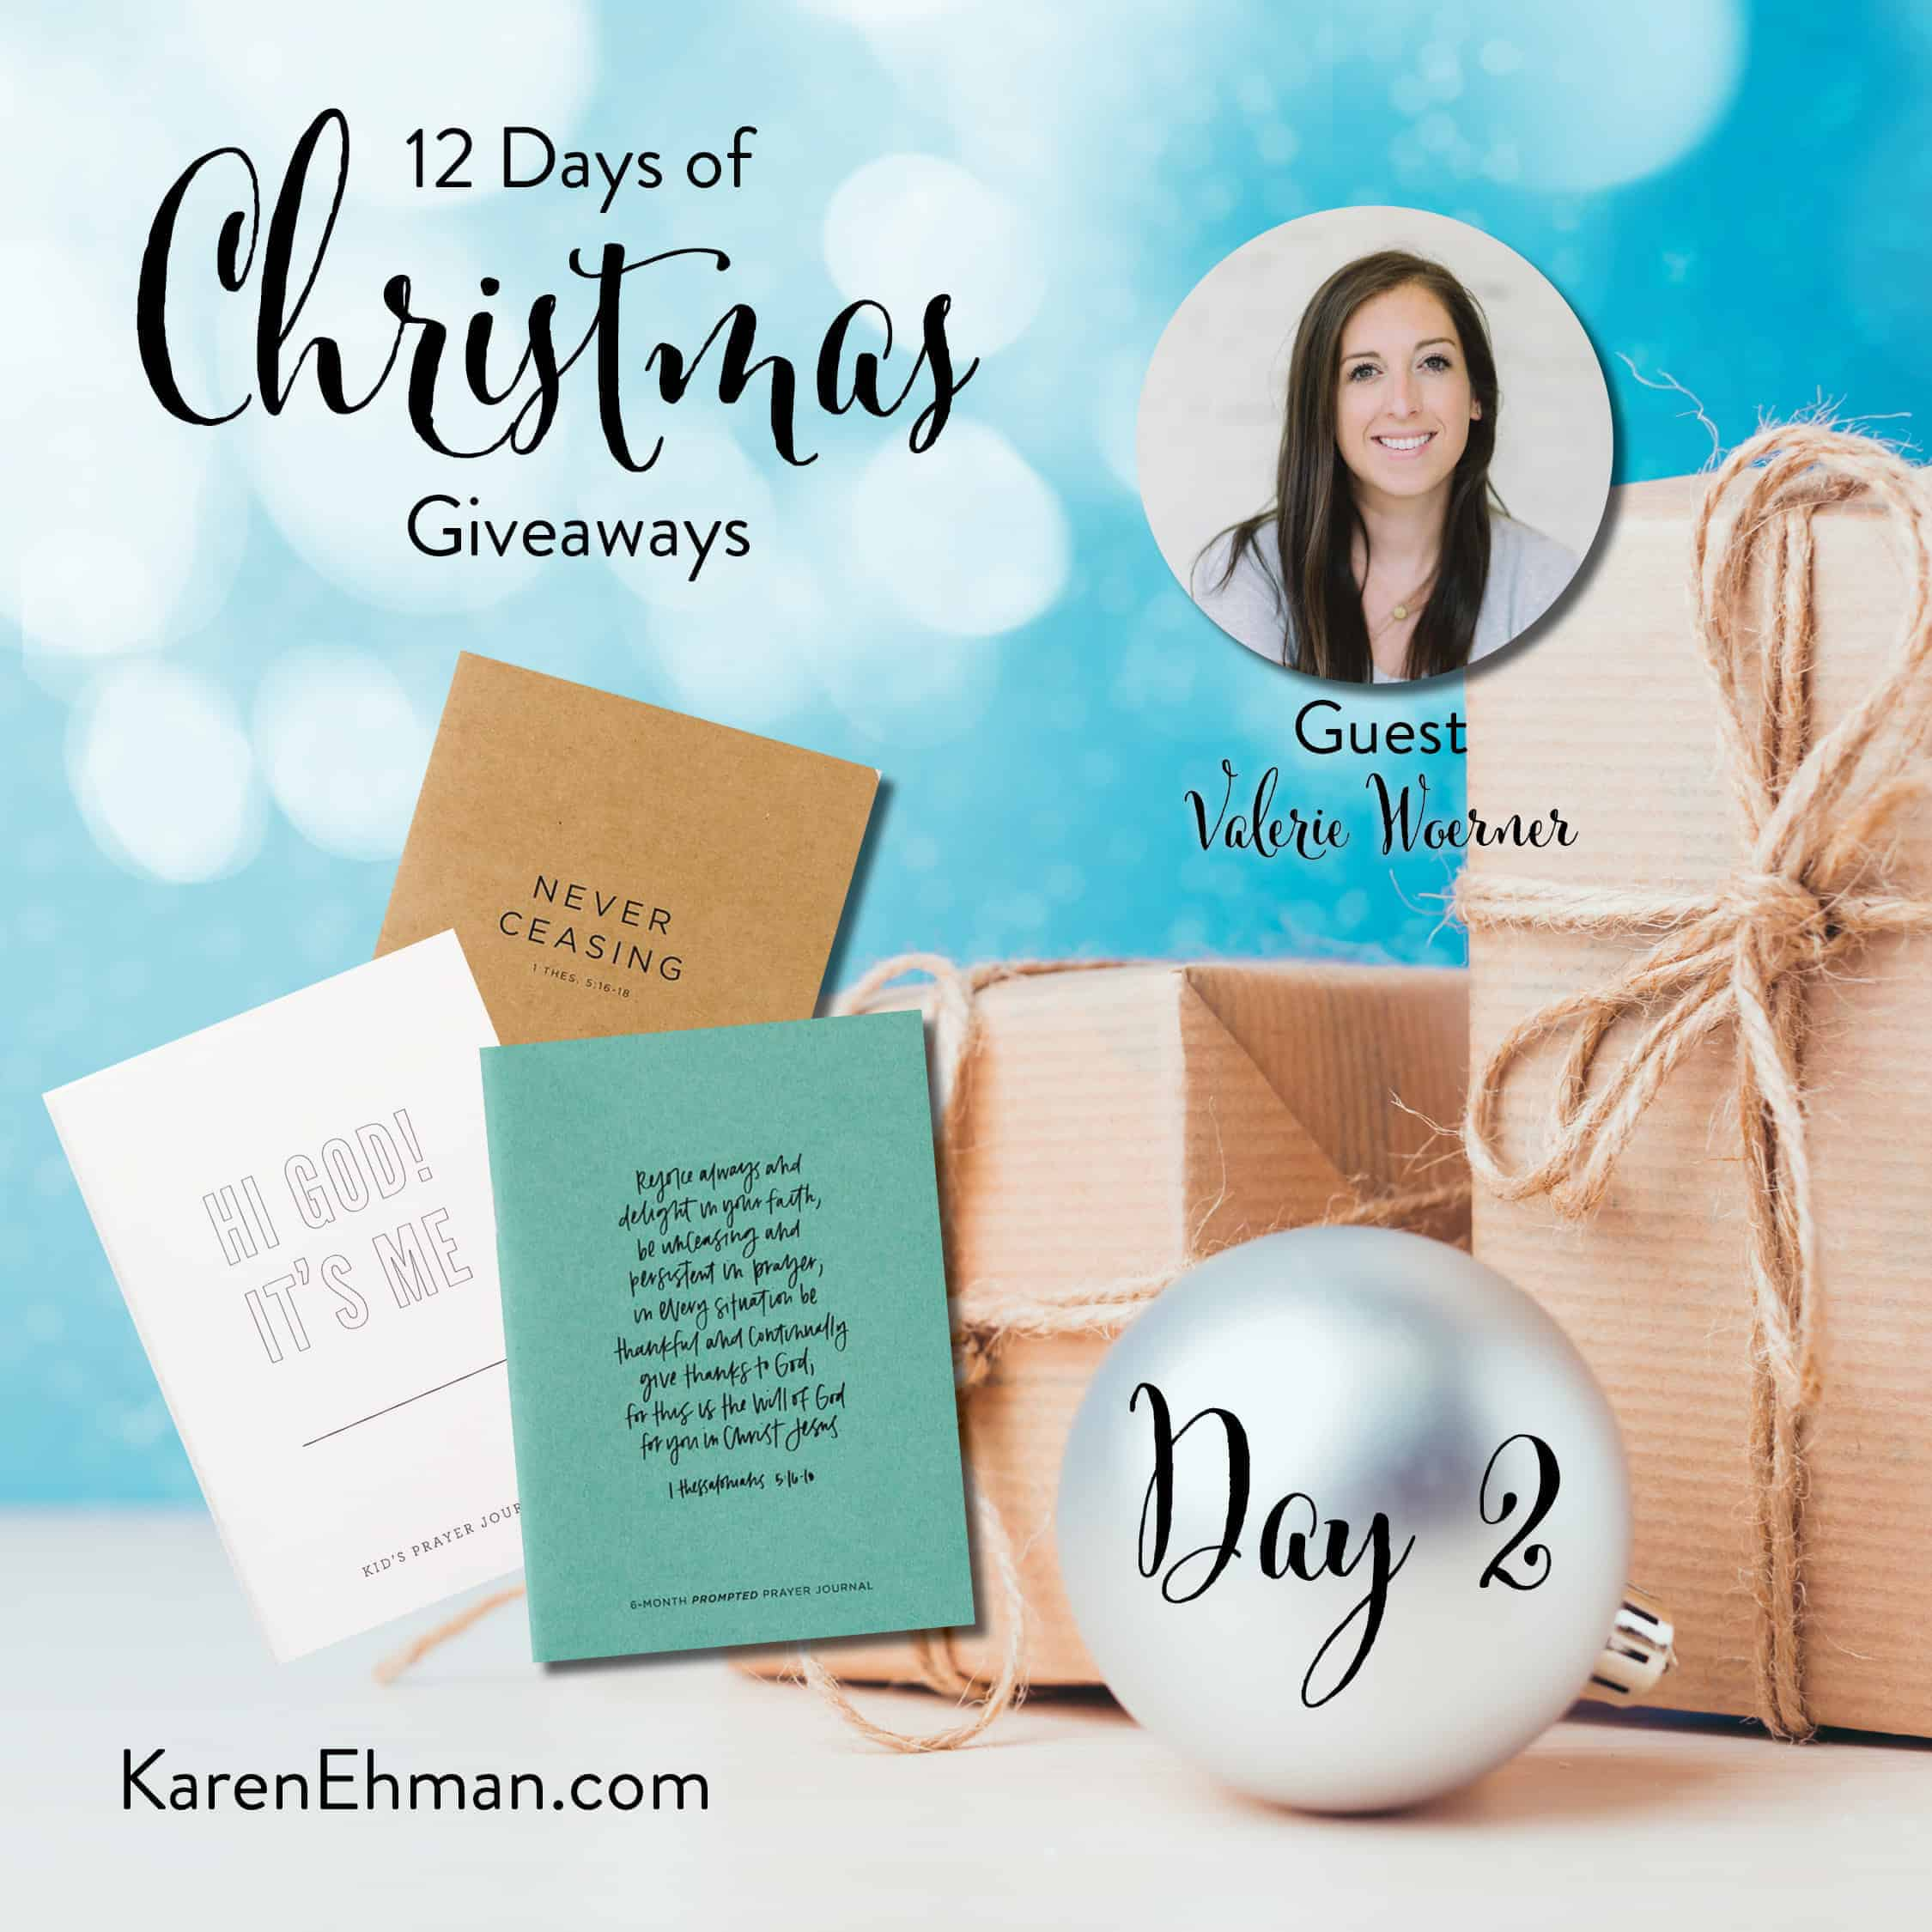 Day 2 of 12 Days of Christmas Giveaways (with Valerie Woerner)